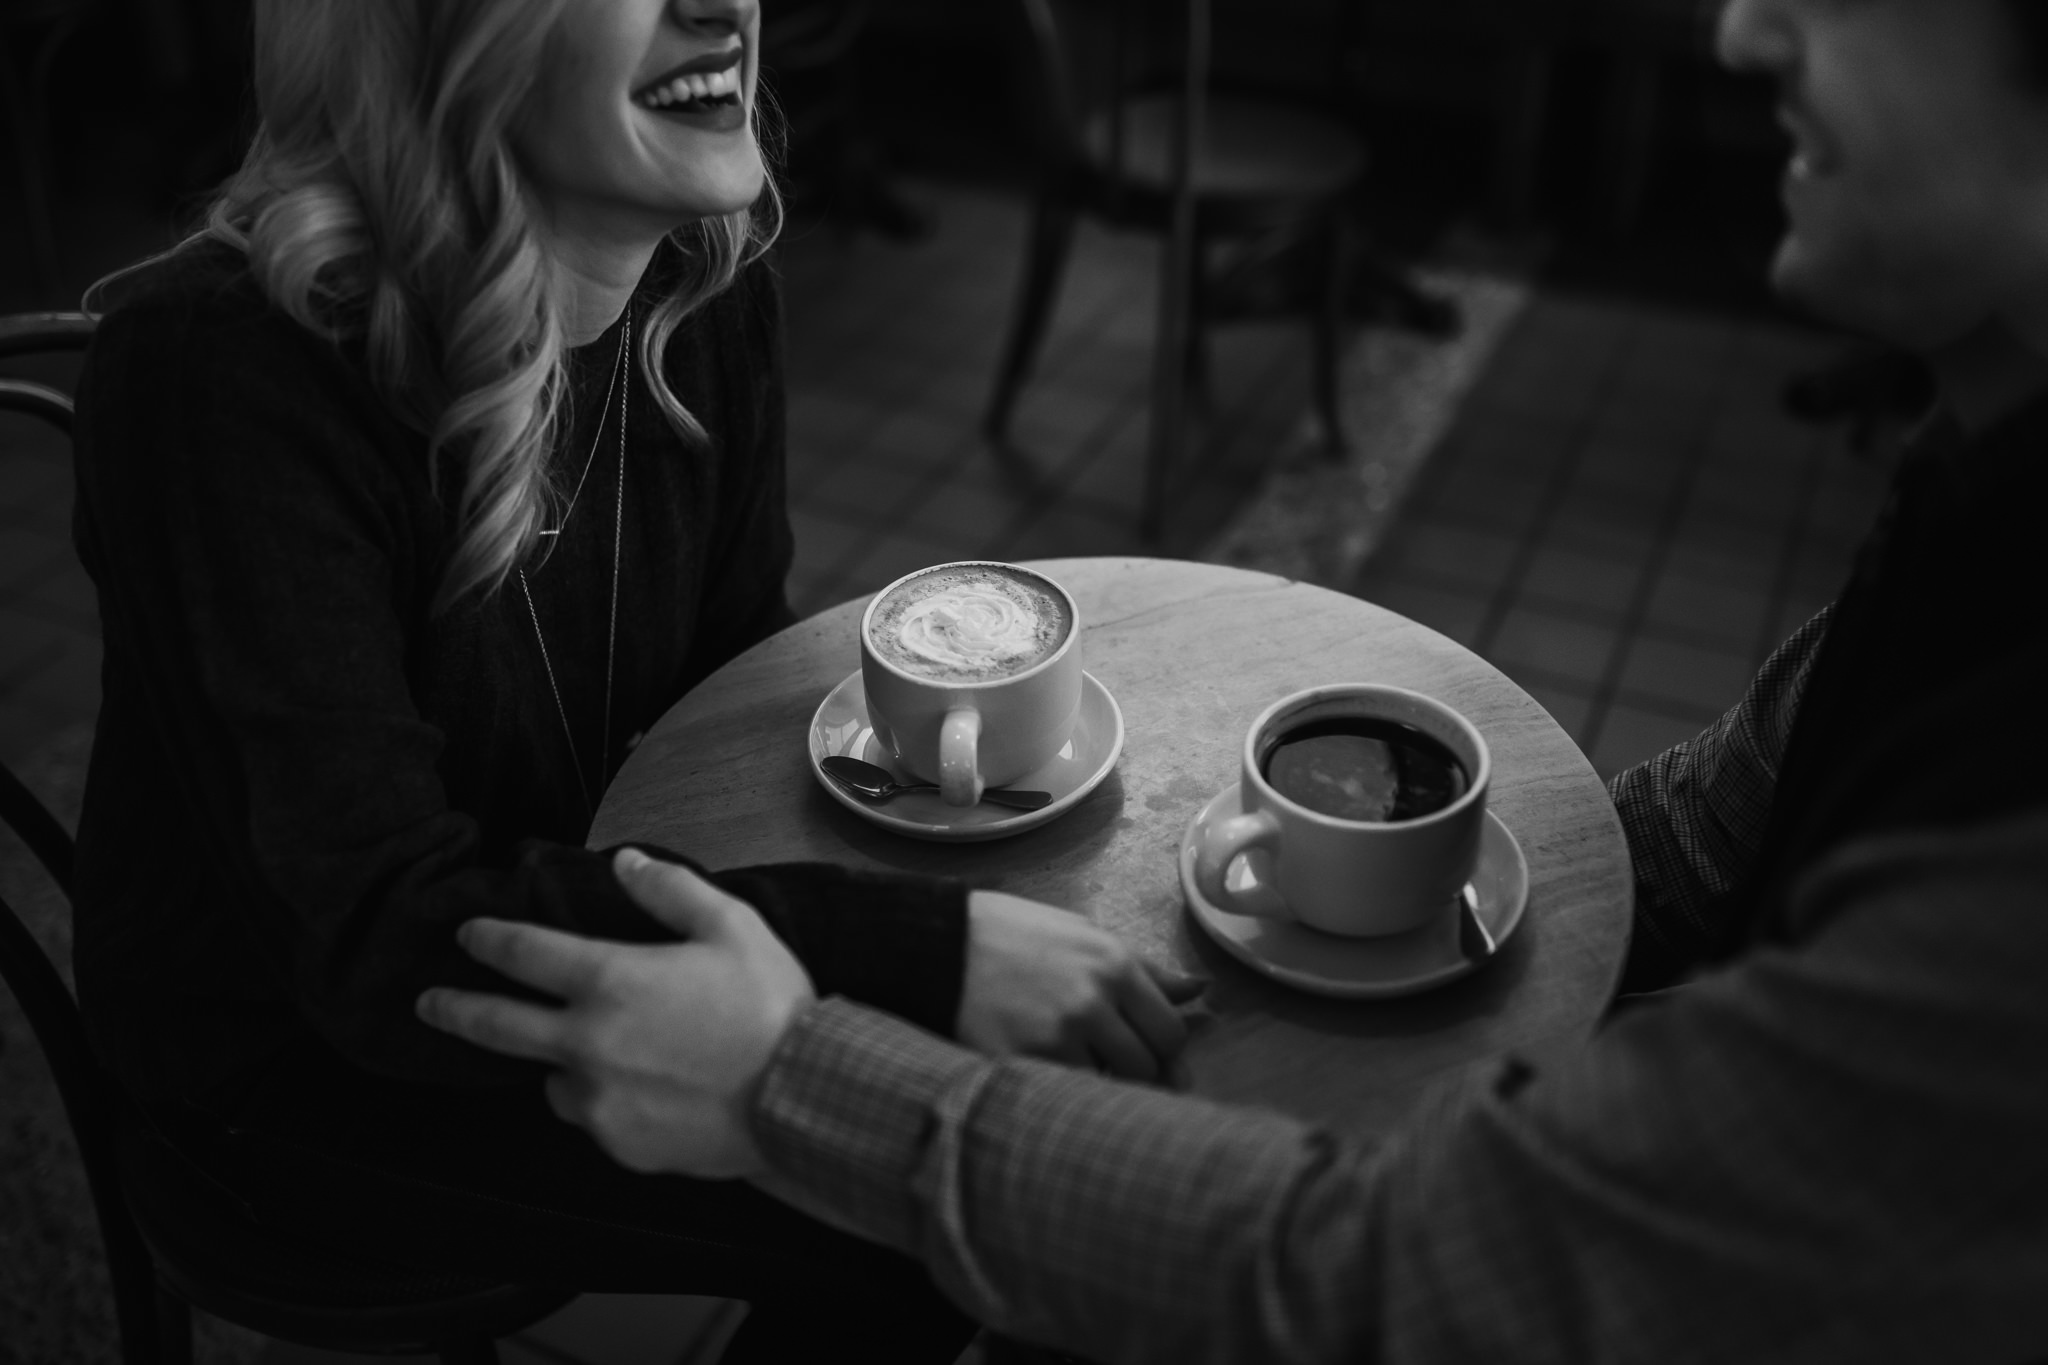 memphis-wedding-photographer-cassie-cook-photography-cafe-keough-engagement-photoshoot-coffee-engagement-10.jpg